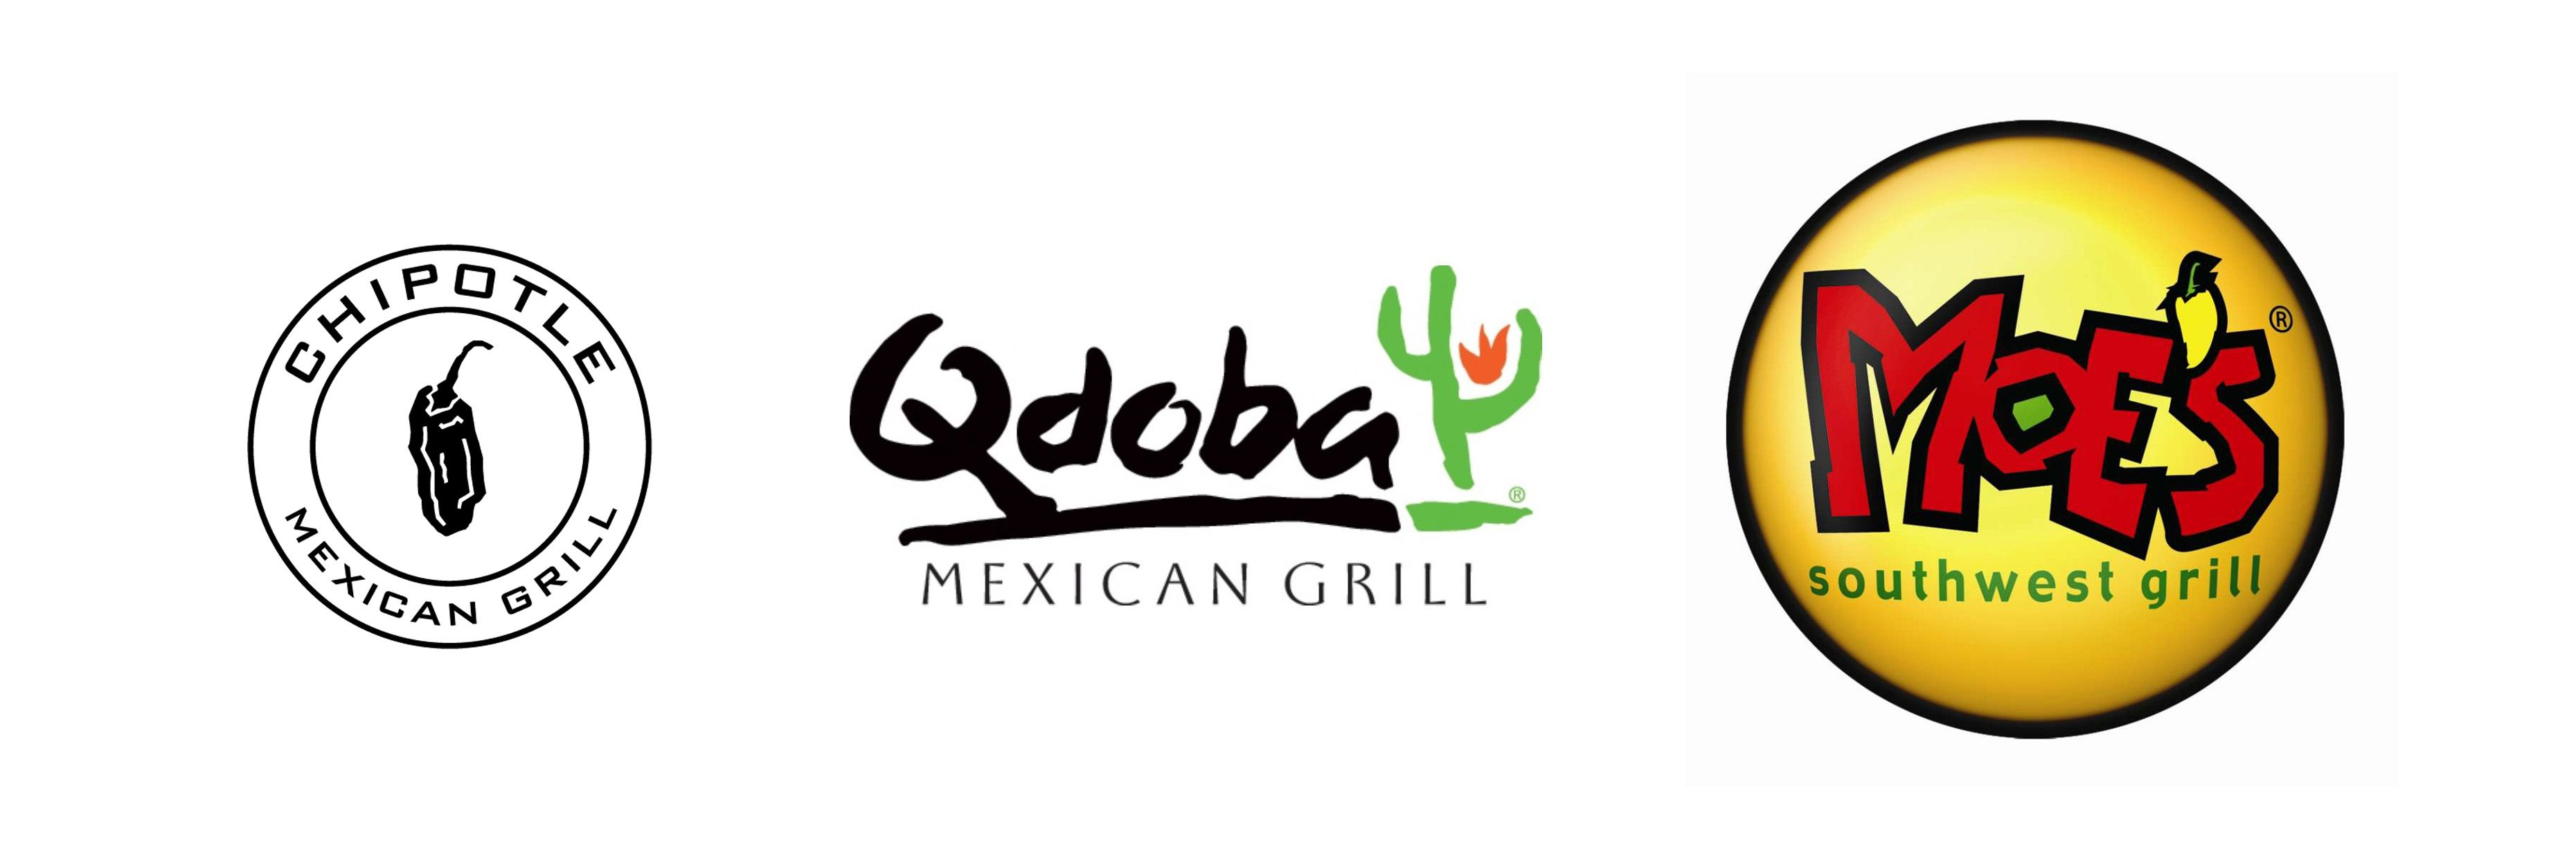 mexican food logos1 jpg 3720 1250 country branding guidelines rh pinterest com mexican food truck logos mexican food logo design